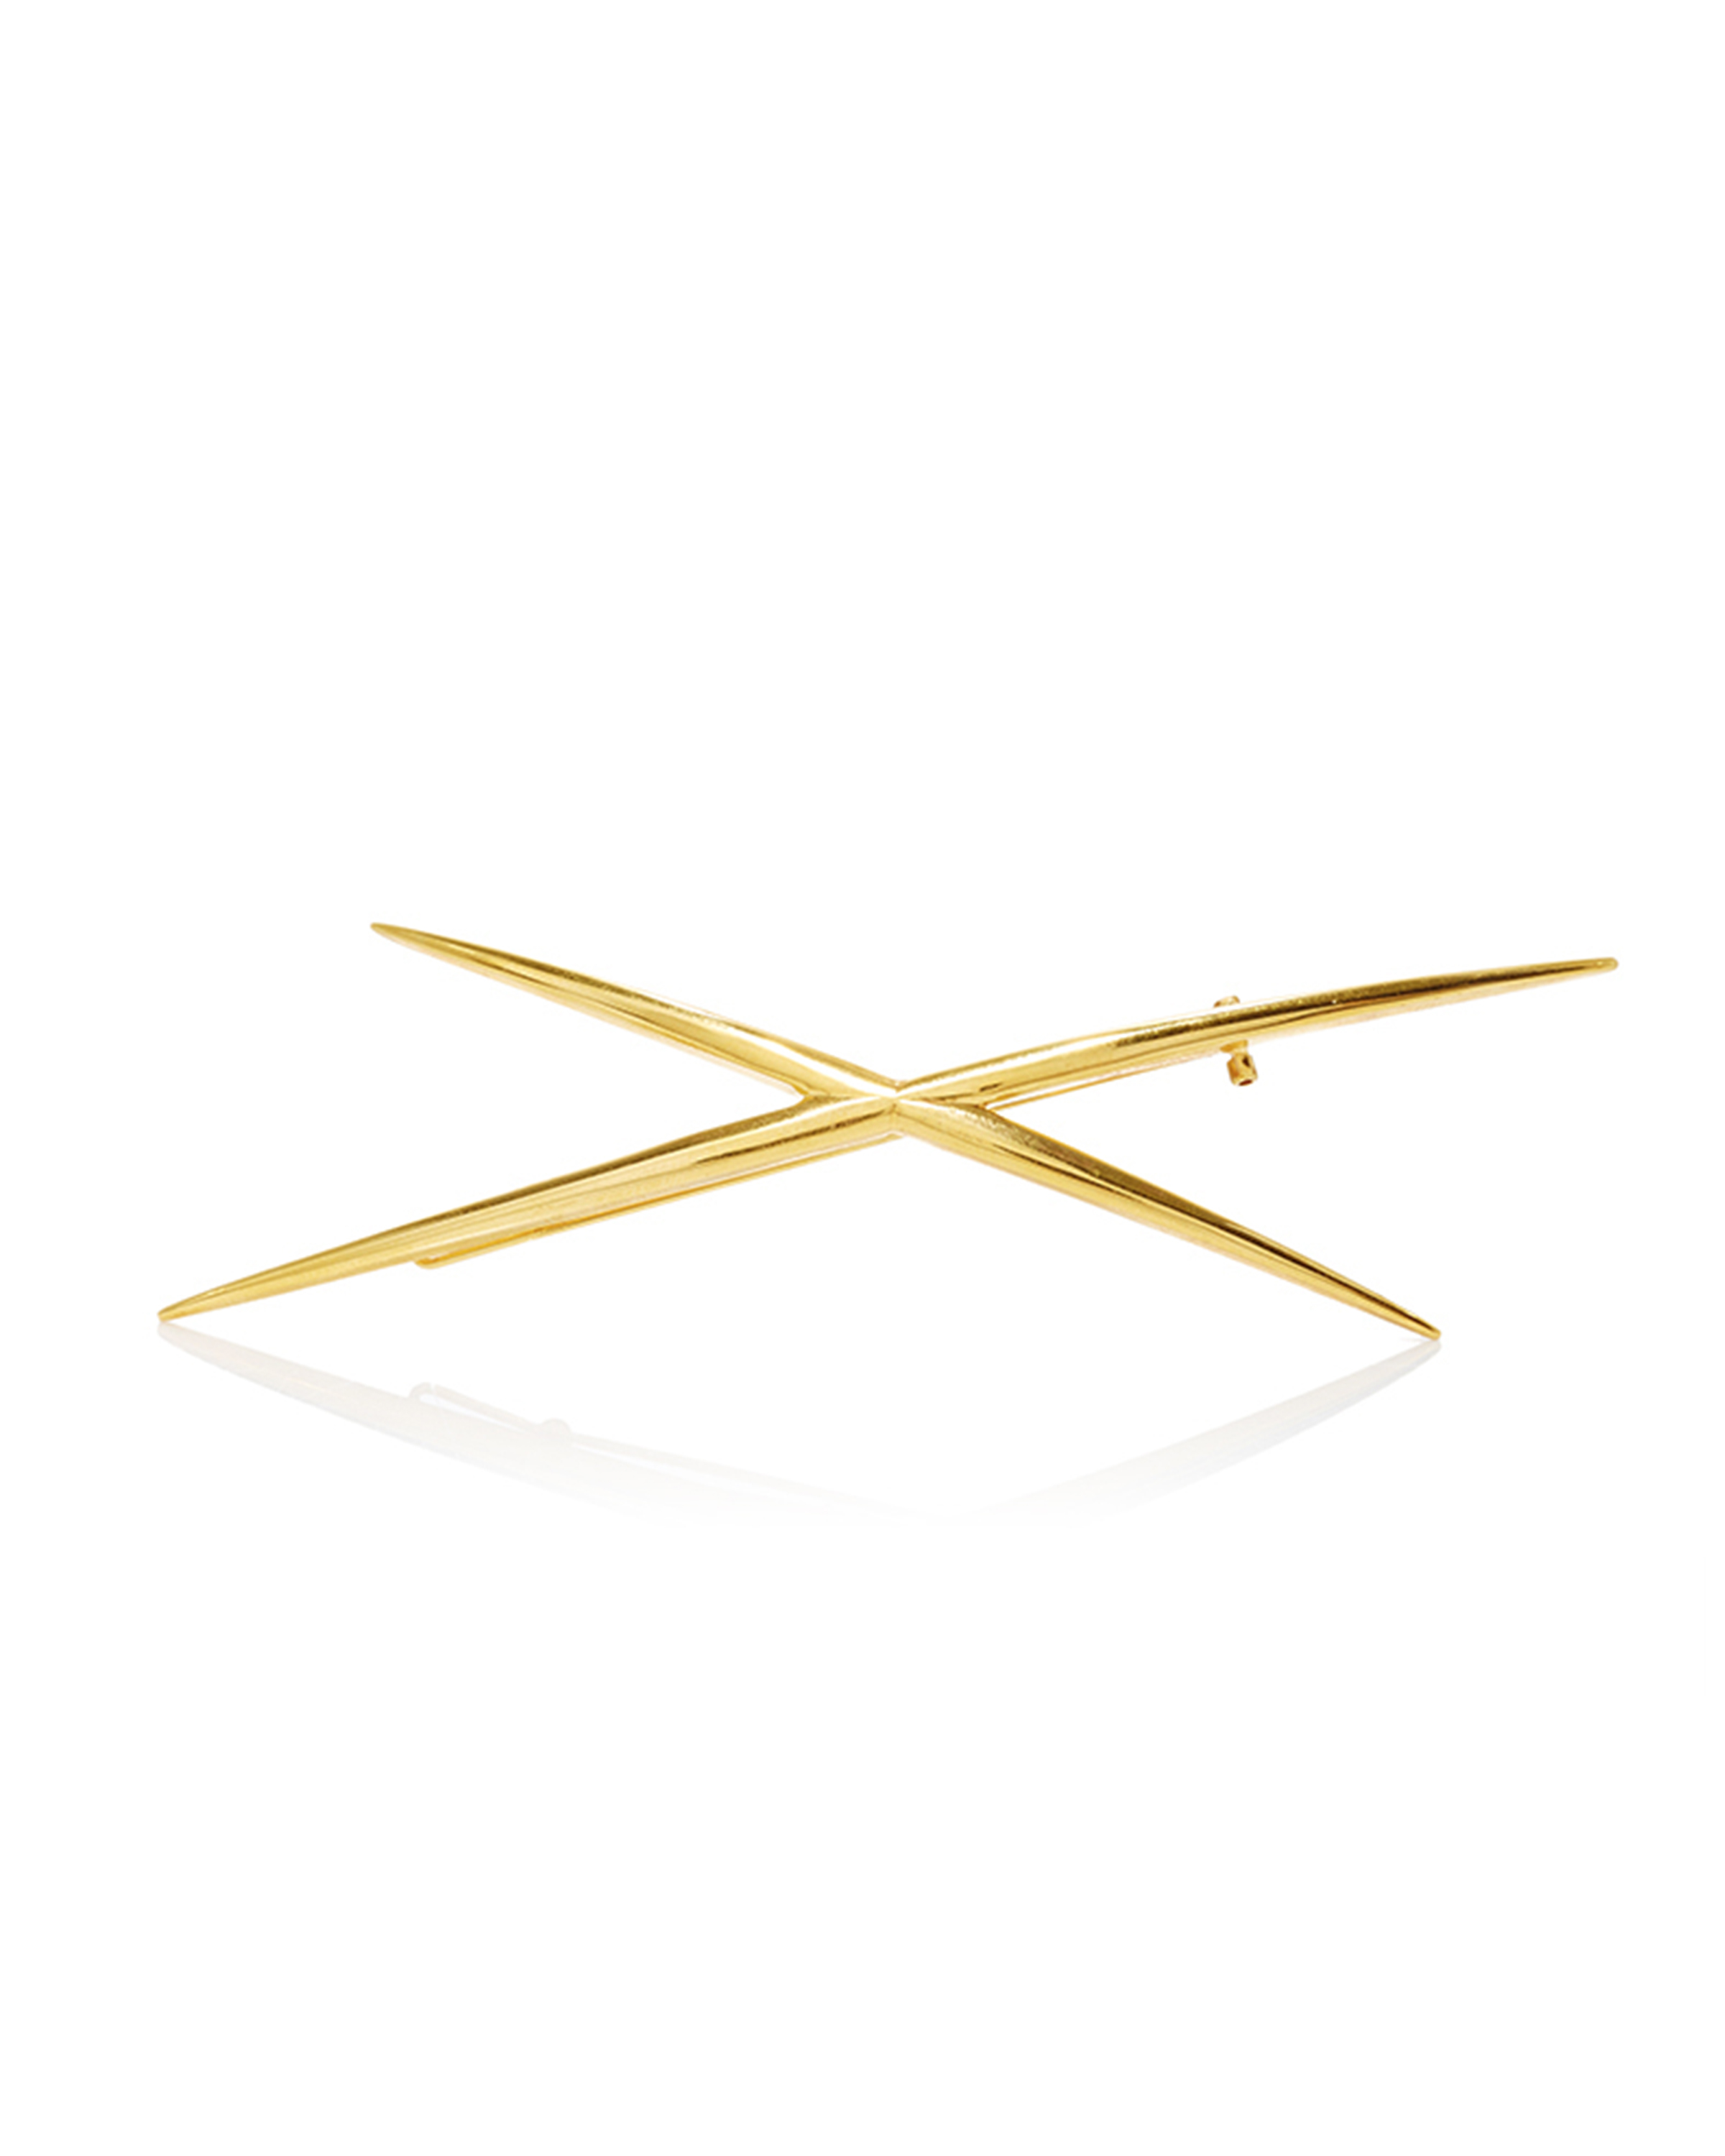 LELET NY EXES GLOSSY BARRETTE, AVAILABLE AT LELETNY